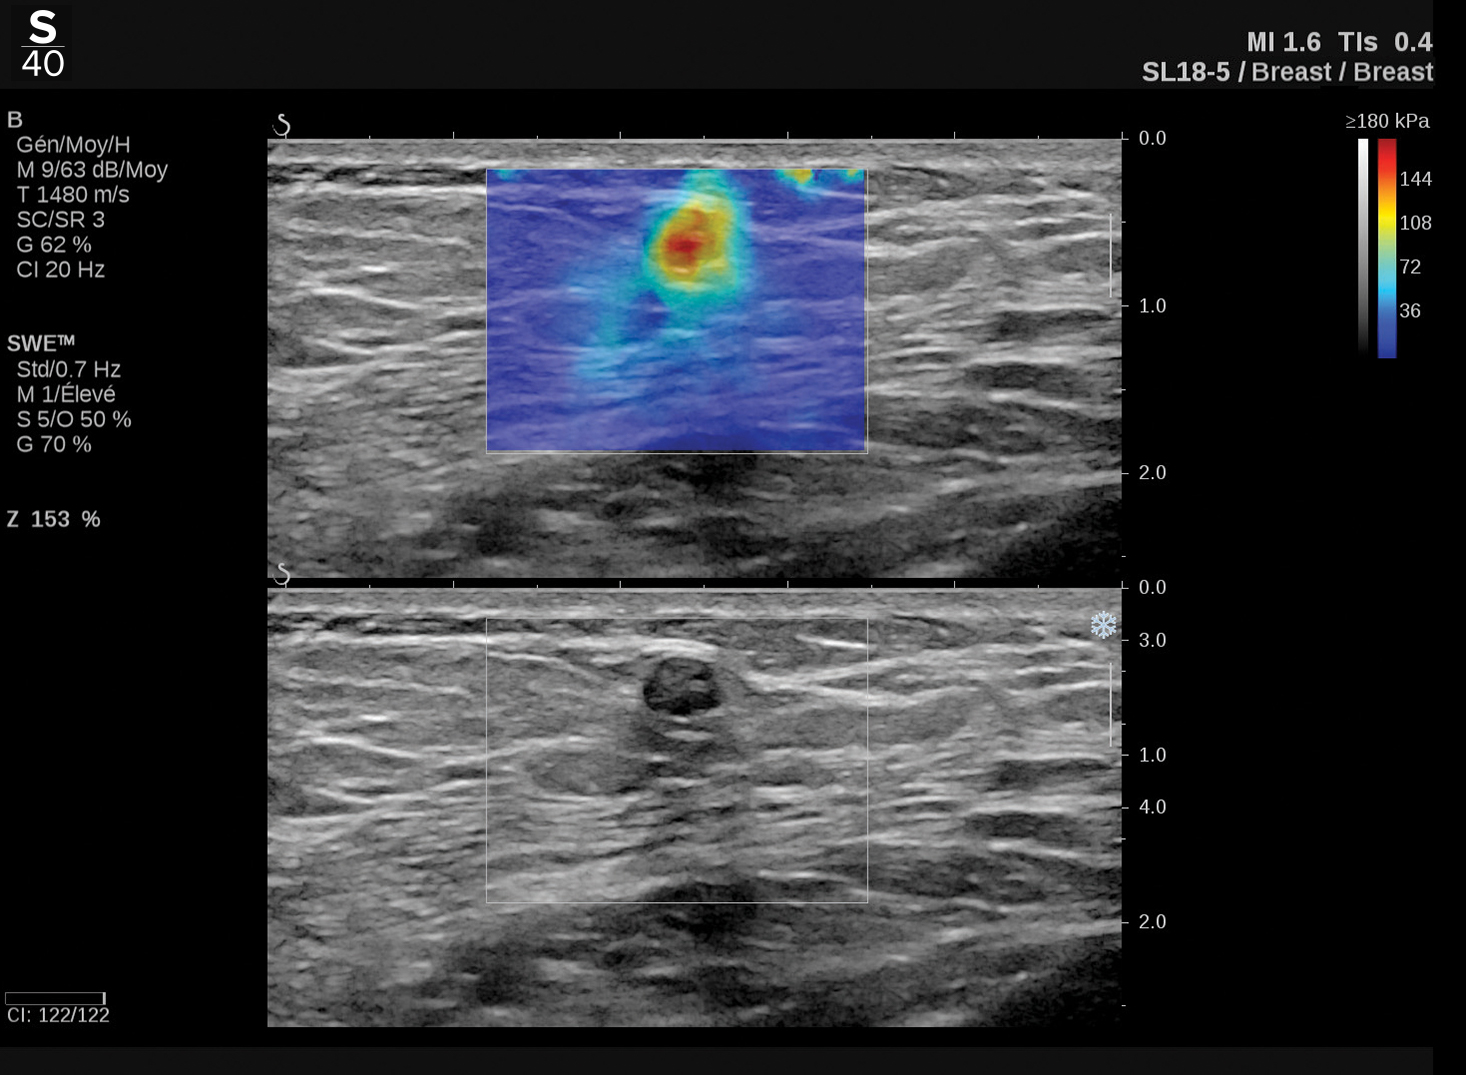 Hologic ShearWave™ PLUS elastography clinical image